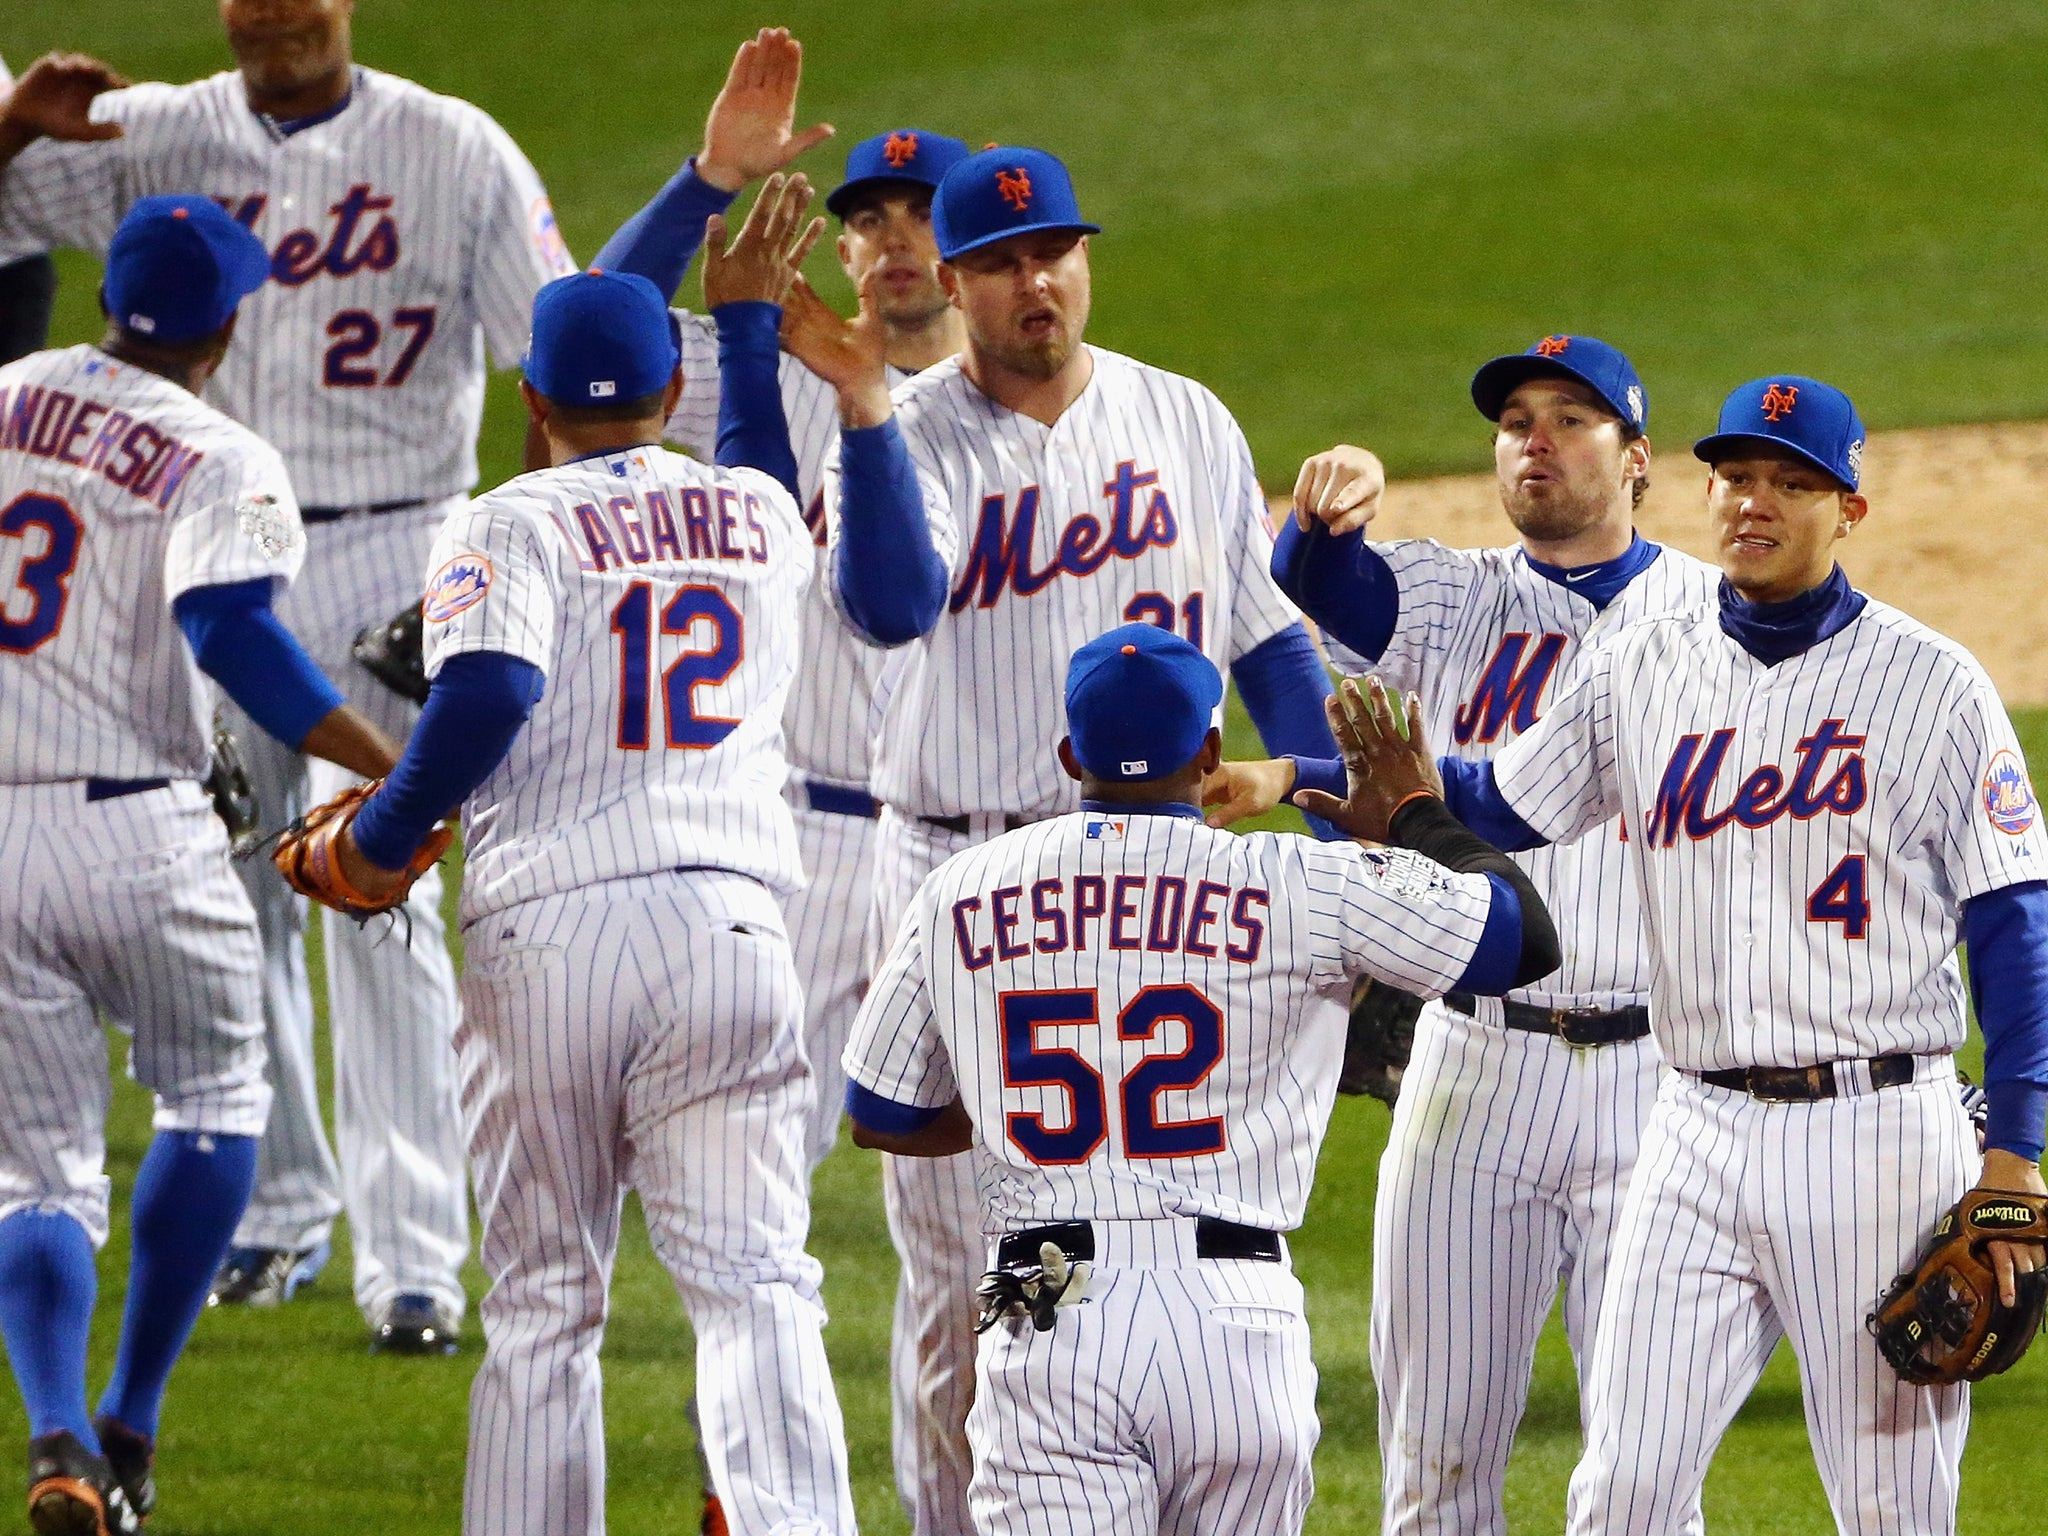 Noew York Mets - latest news, breaking stories and comment